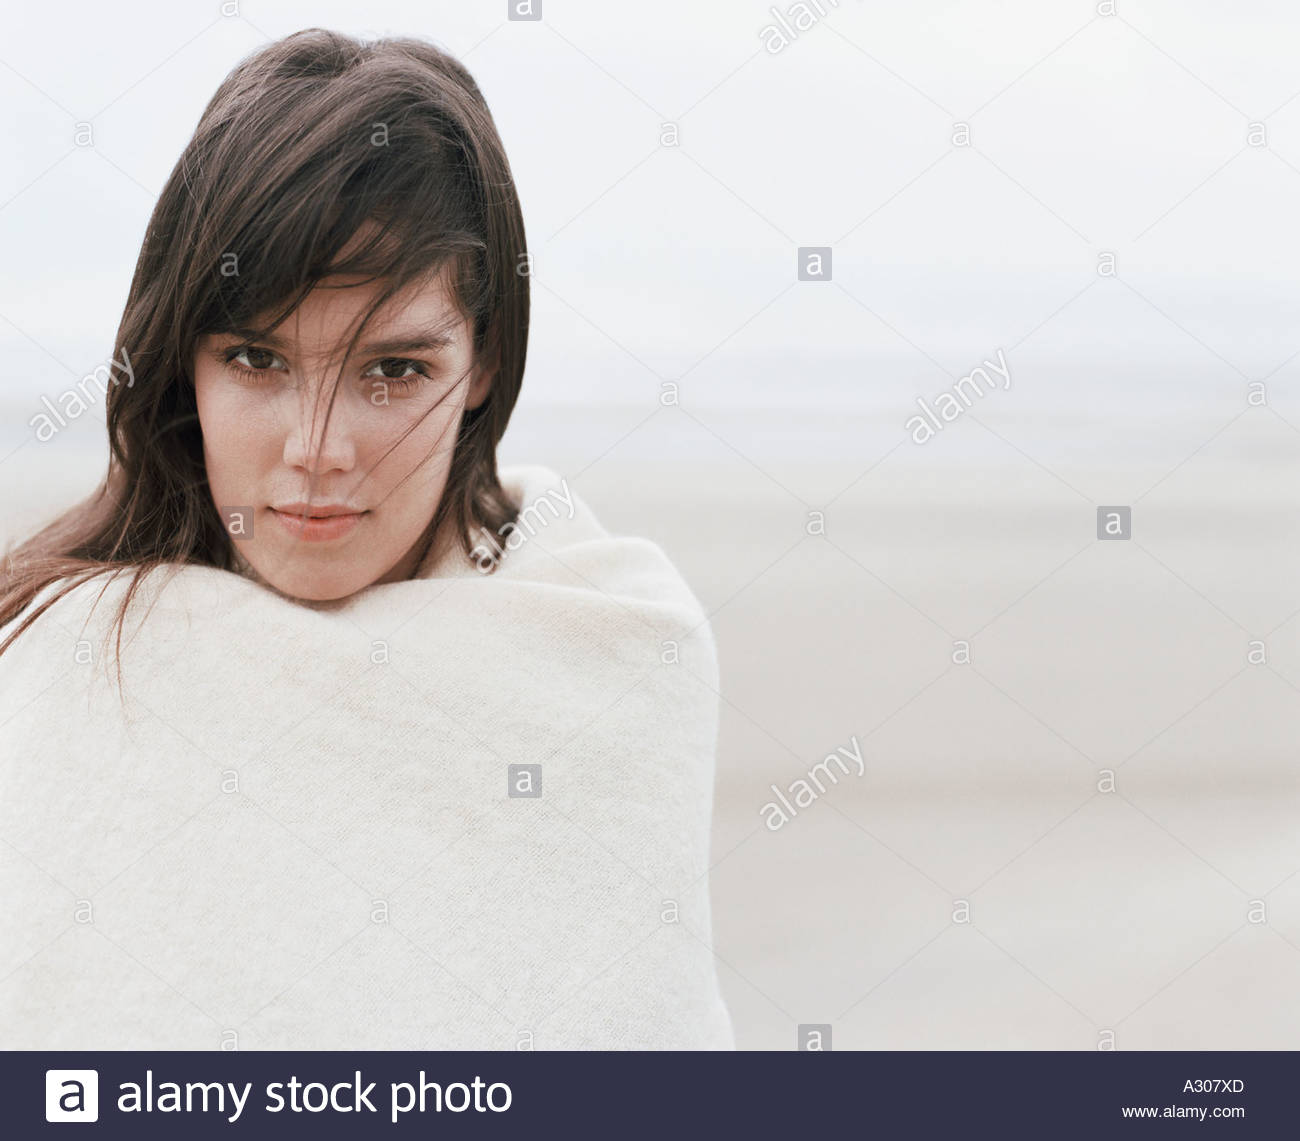 Young woman by ocean - Stock Image